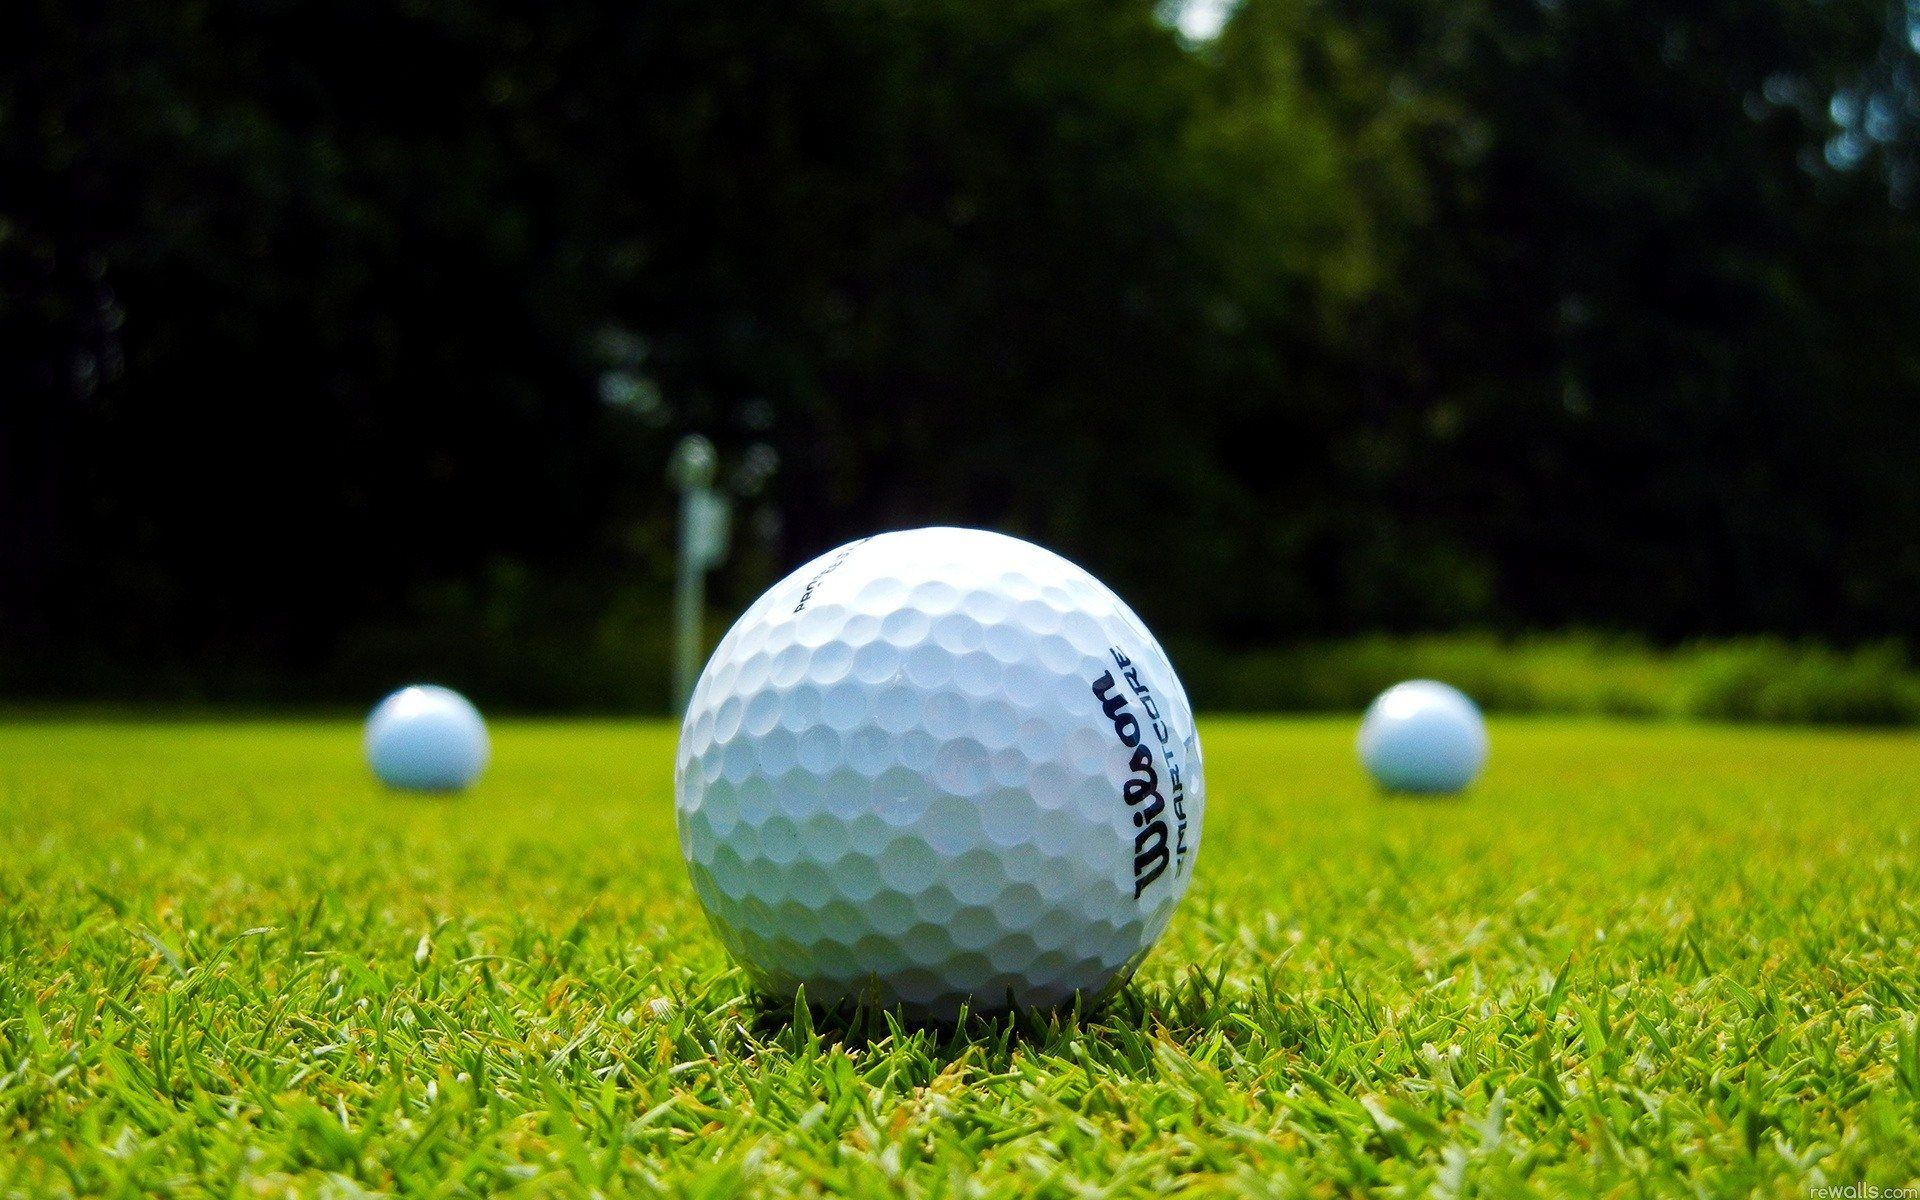 Free Mobile Phone Wallpapers Of Golf 1024 768 Golf Ball Wallpapers 41 Wallpapers Ado Wallpaper Magazine Inspirational Wallpapers Winter Wallpaper